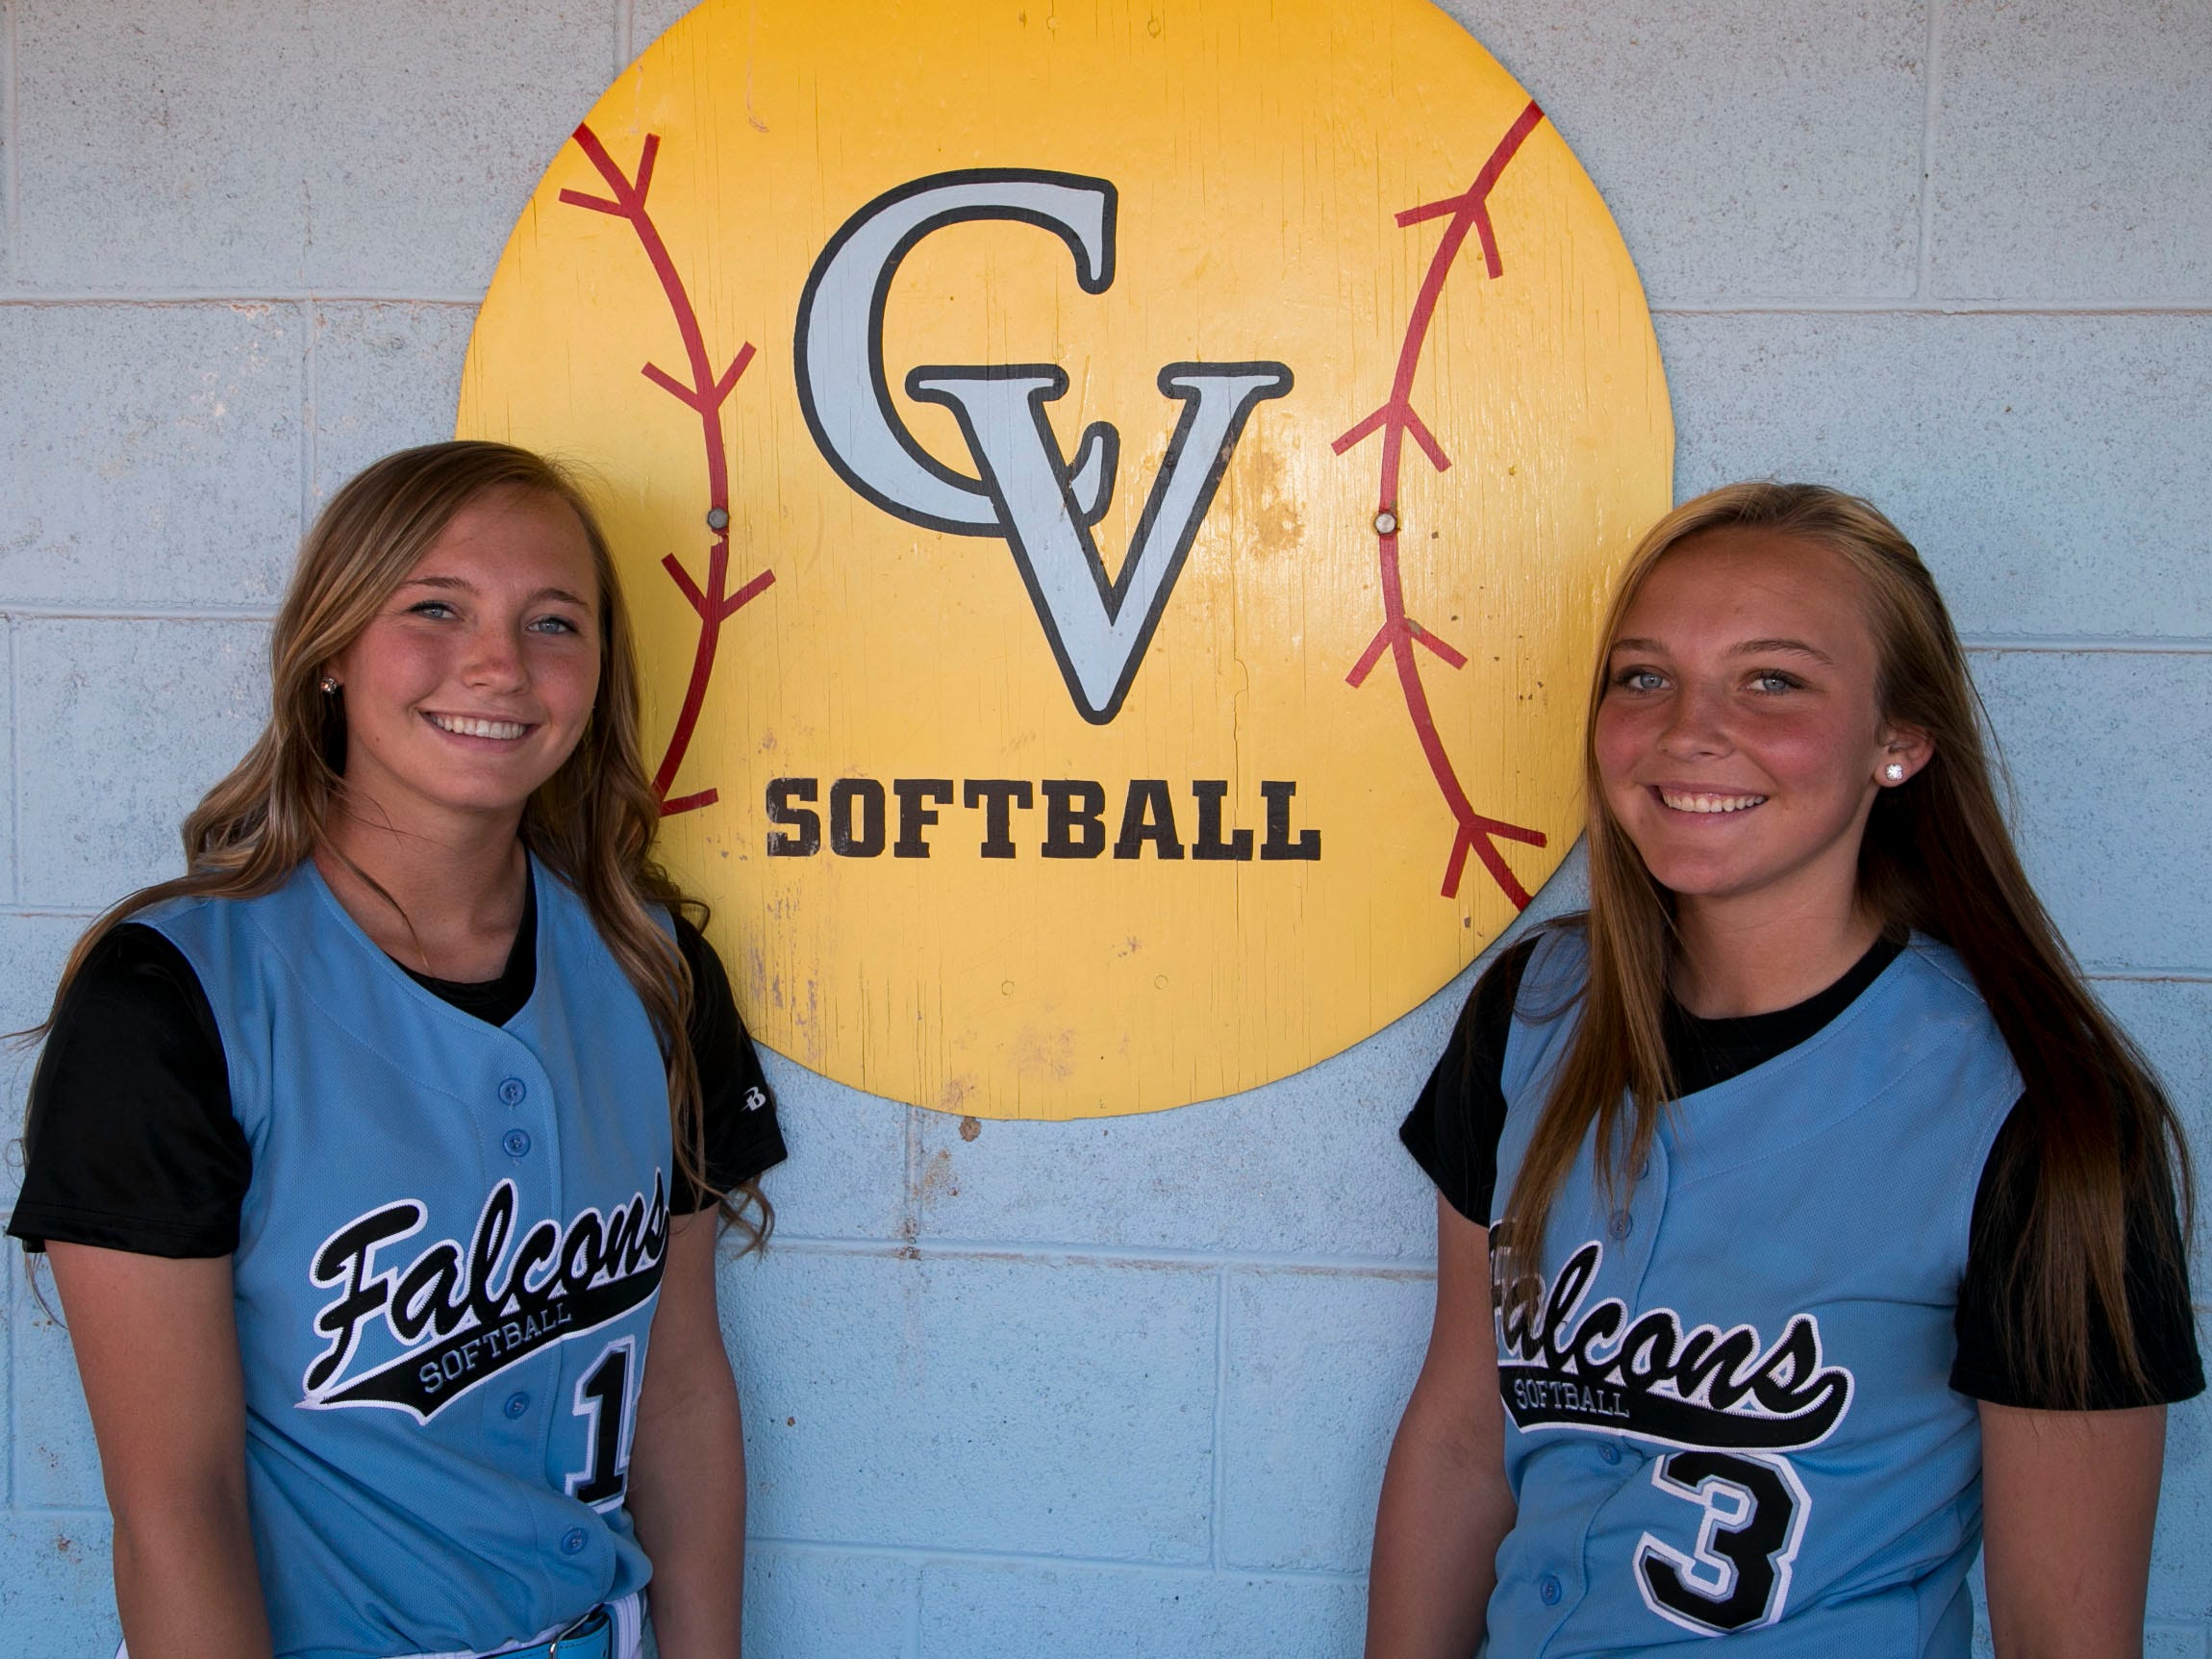 Canyon View's Shontae Clark and Shaycie Clark having been playing softball since they were eight years old and have been playing alongside each other ever since.